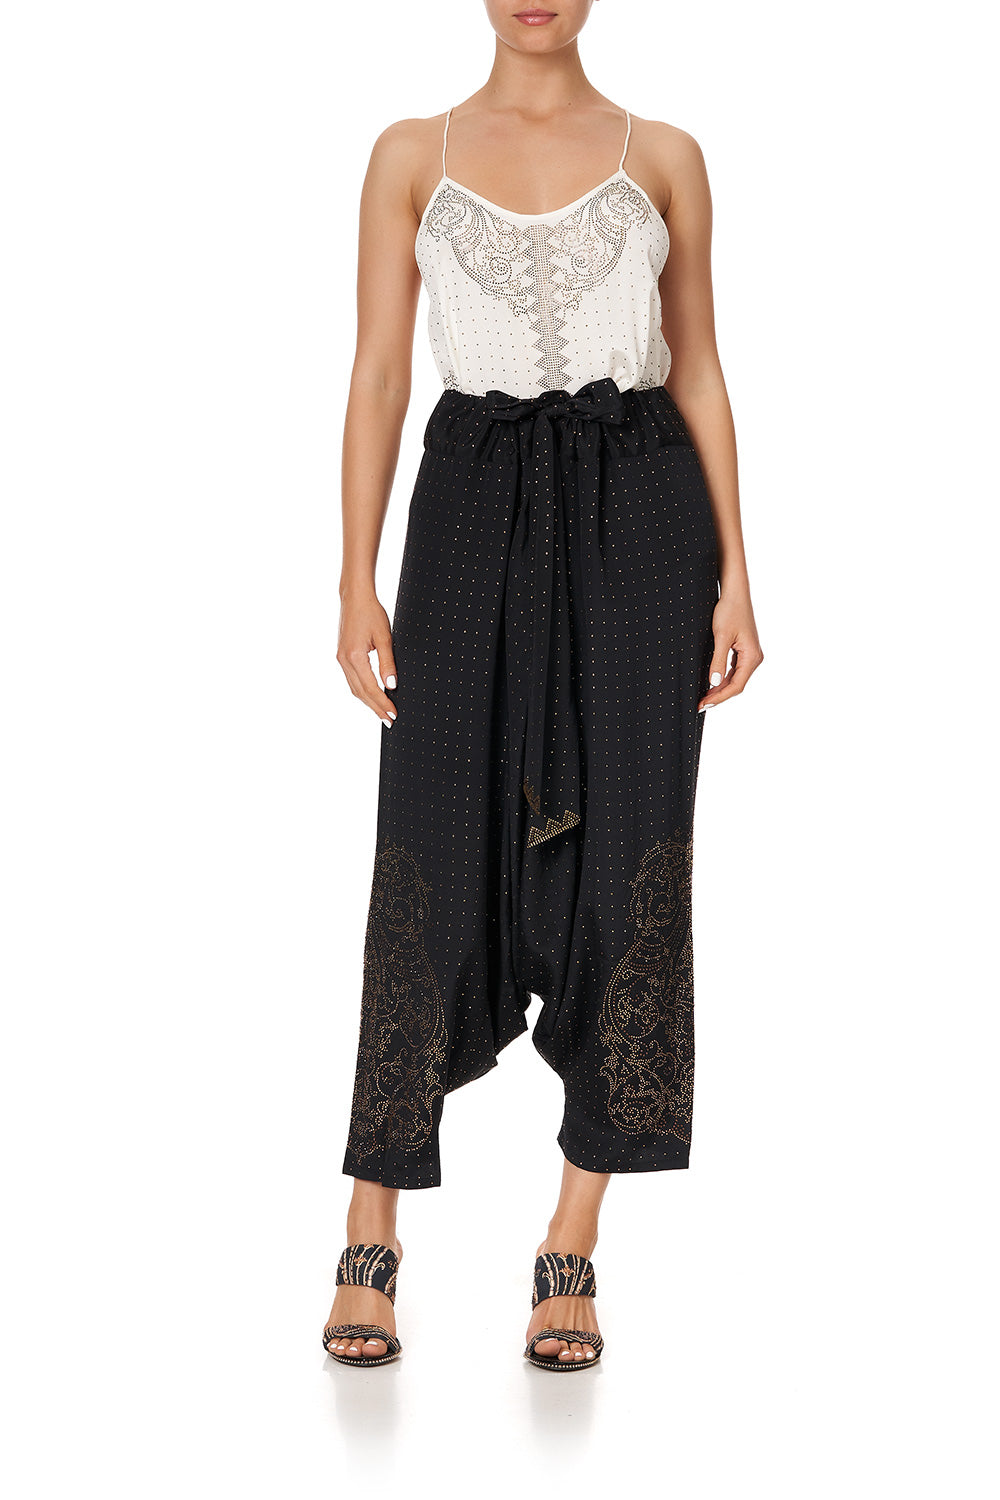 HAREM PANTS LUXE BLACK